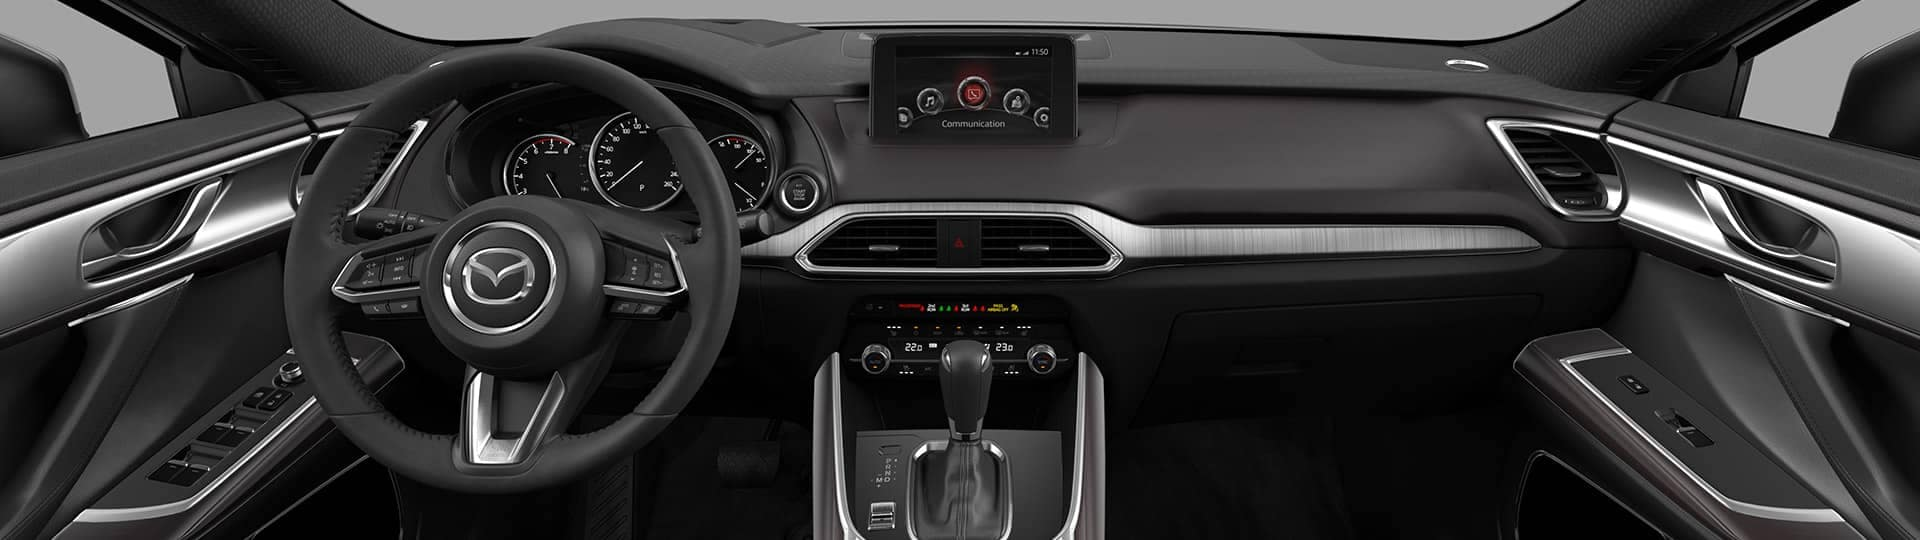 2019 Mazda CX-9 dashboard